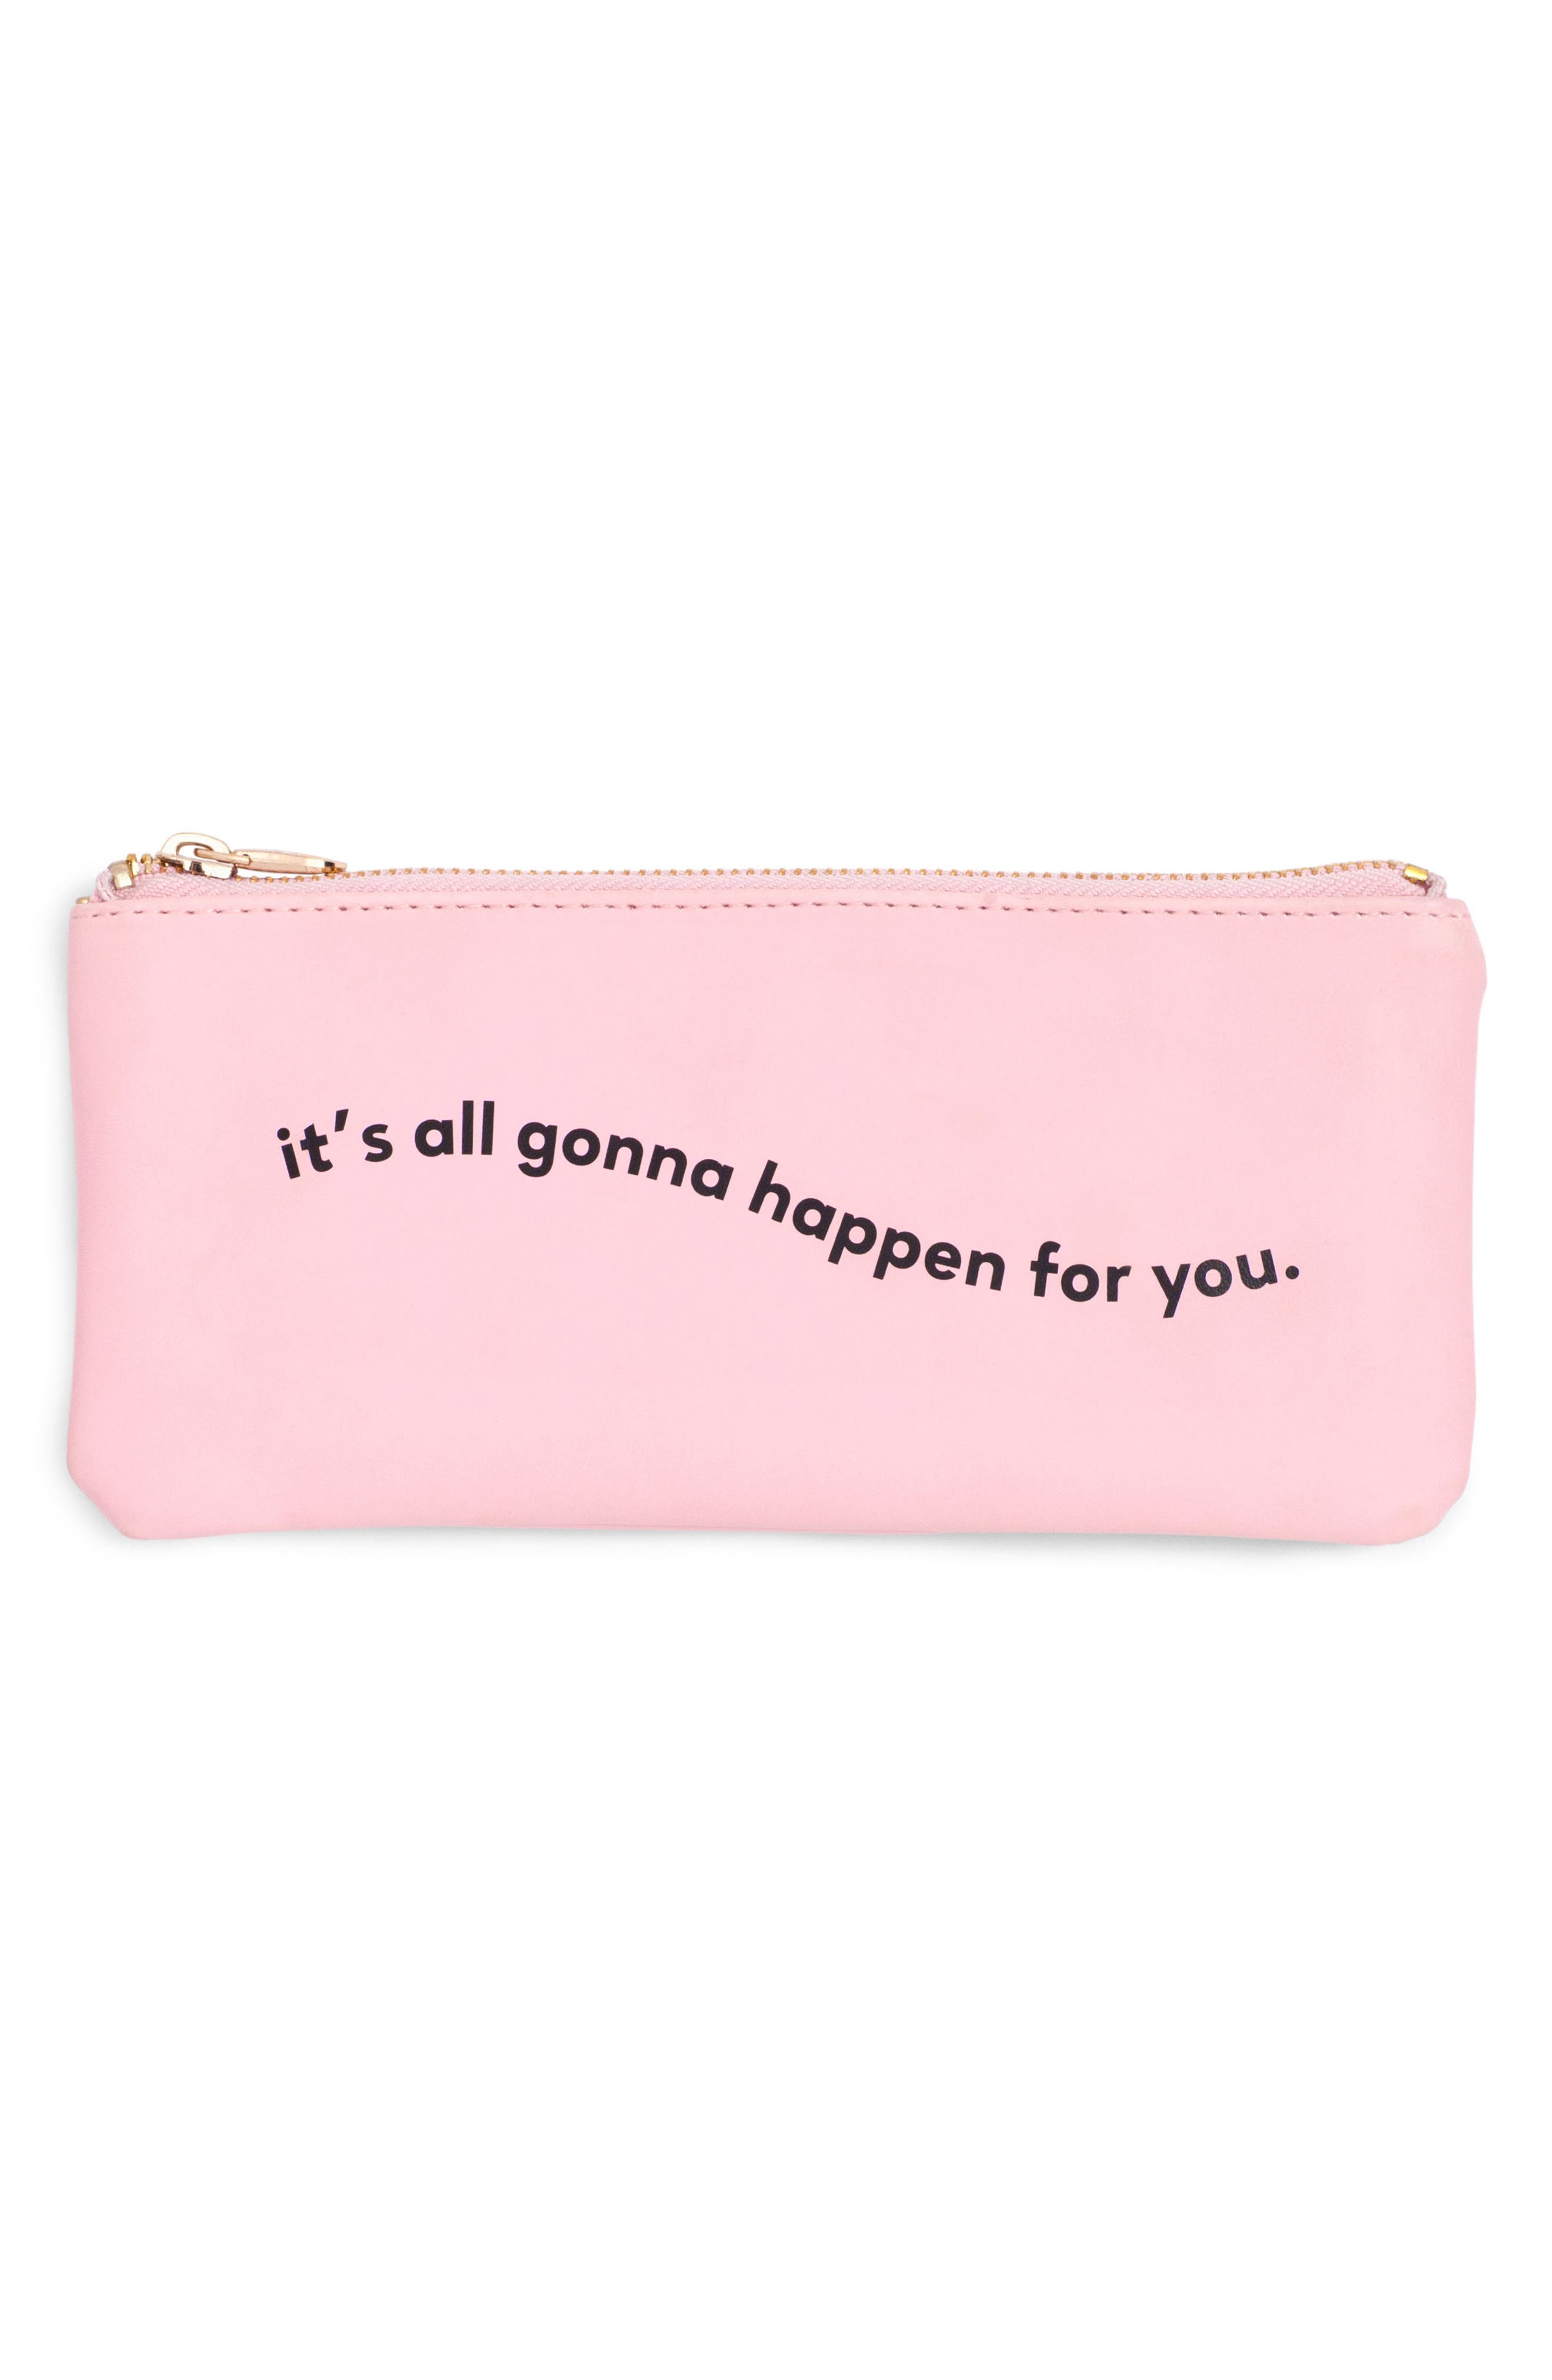 Alternate Image 1 Selected - ban.do It's All Gonna Happen Pencil Pouch